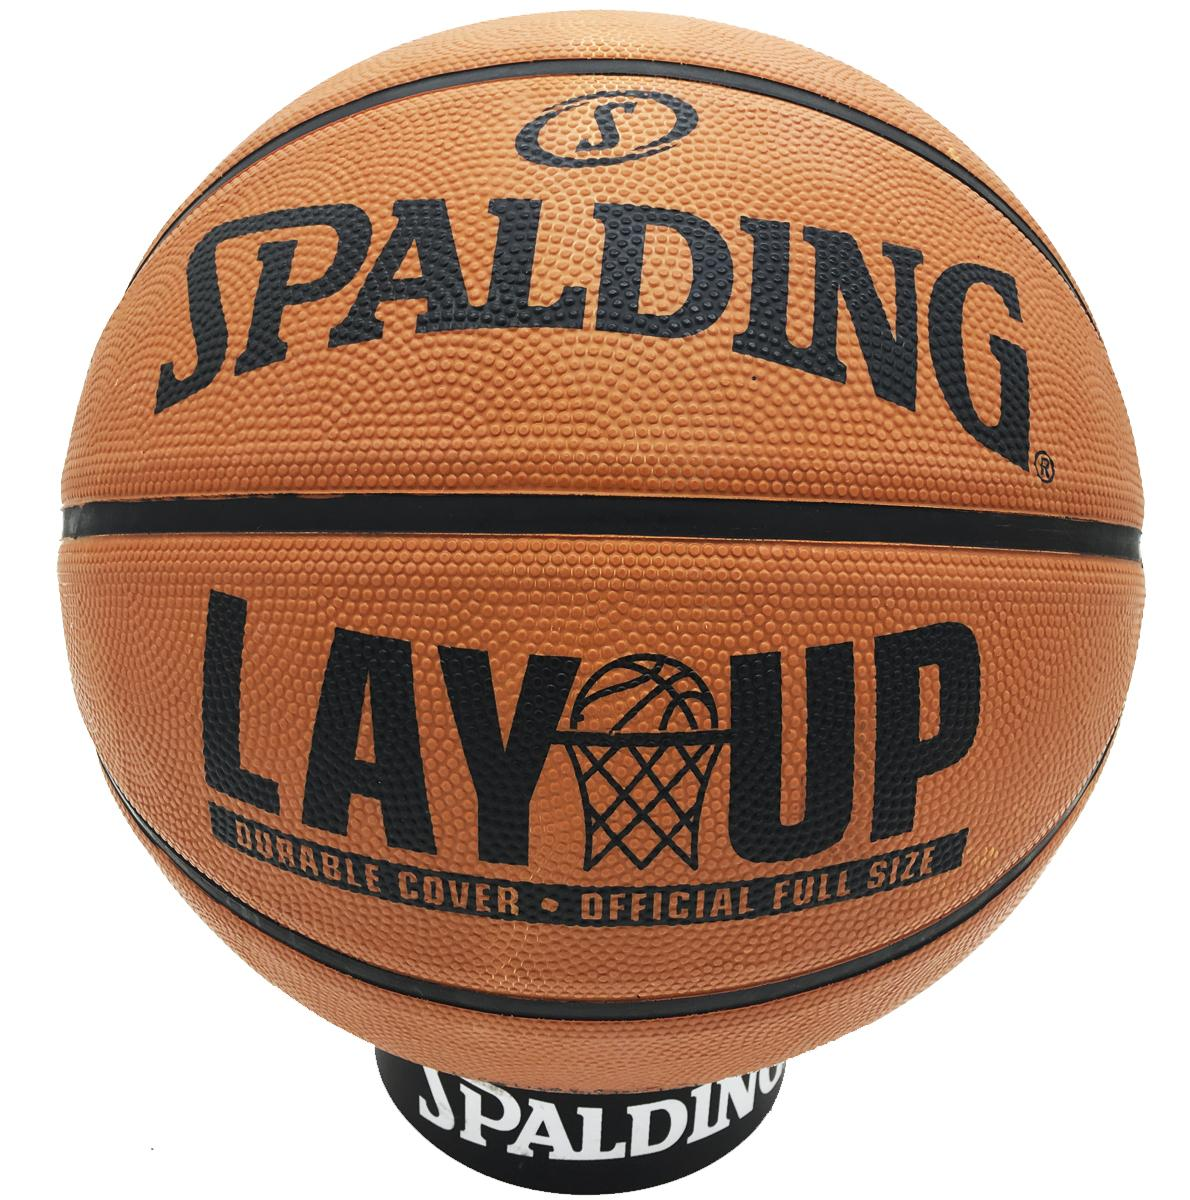 Spalding Basketball Philippines - Spalding Basketball Game for sale ... 1b5b051ad